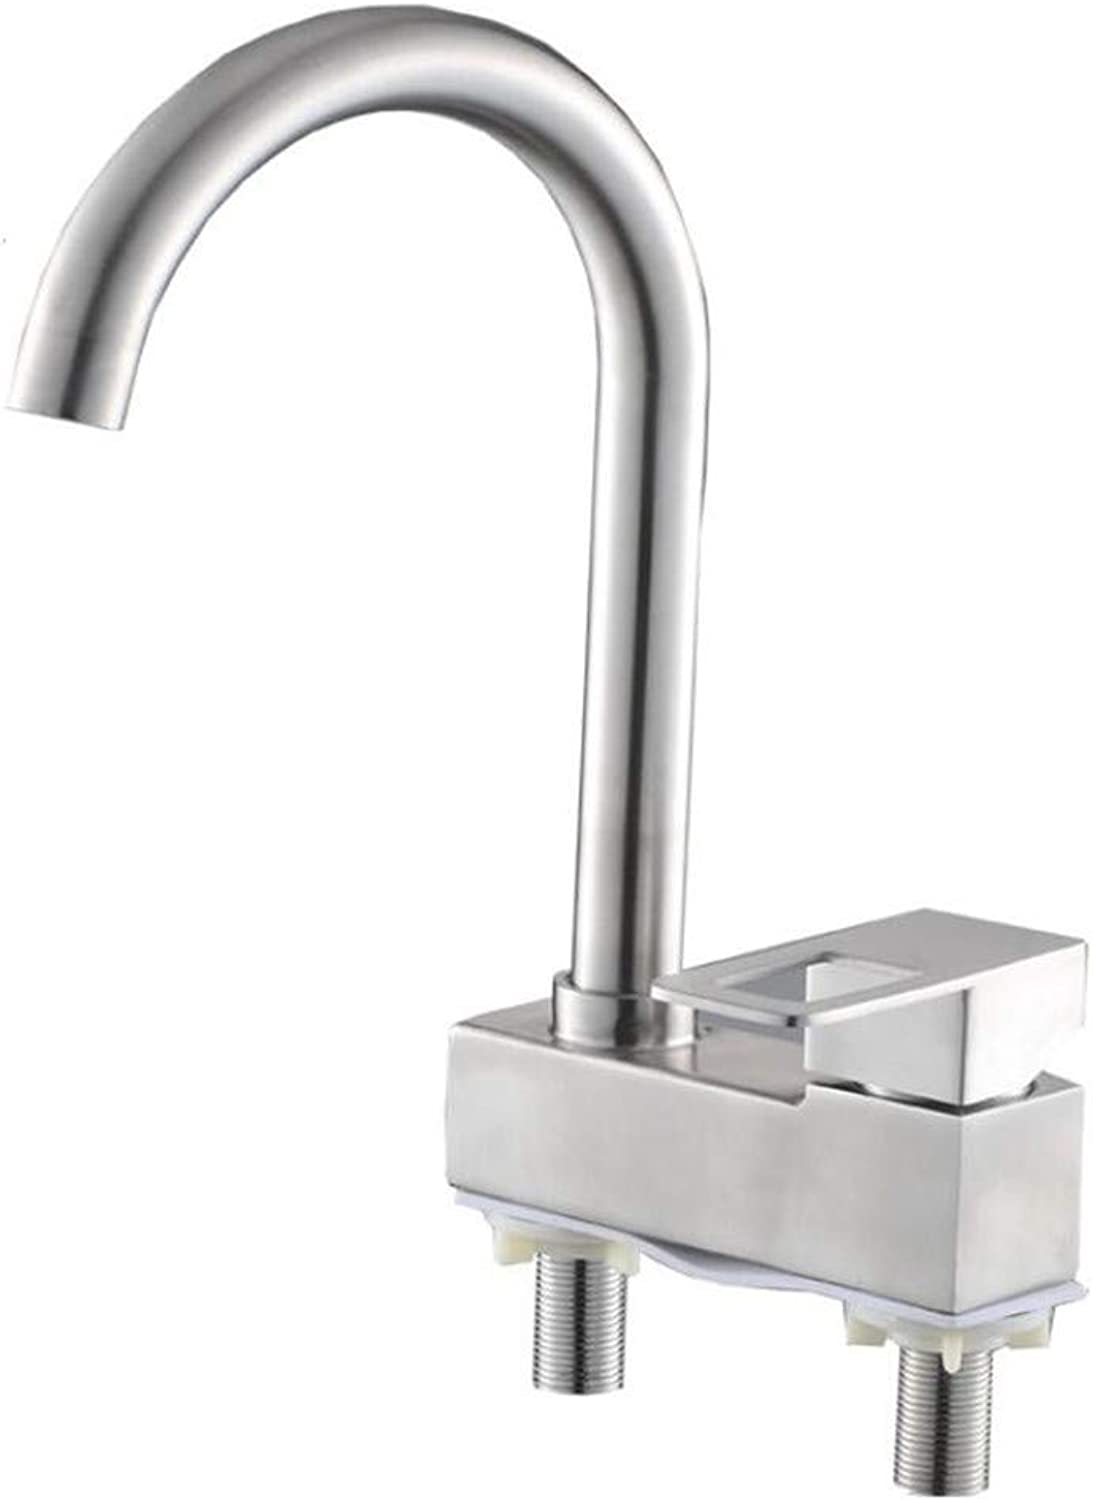 Faucet Mone Spout Basinstainless Steel Basin with Hot and Cold Faucet and Large Bend